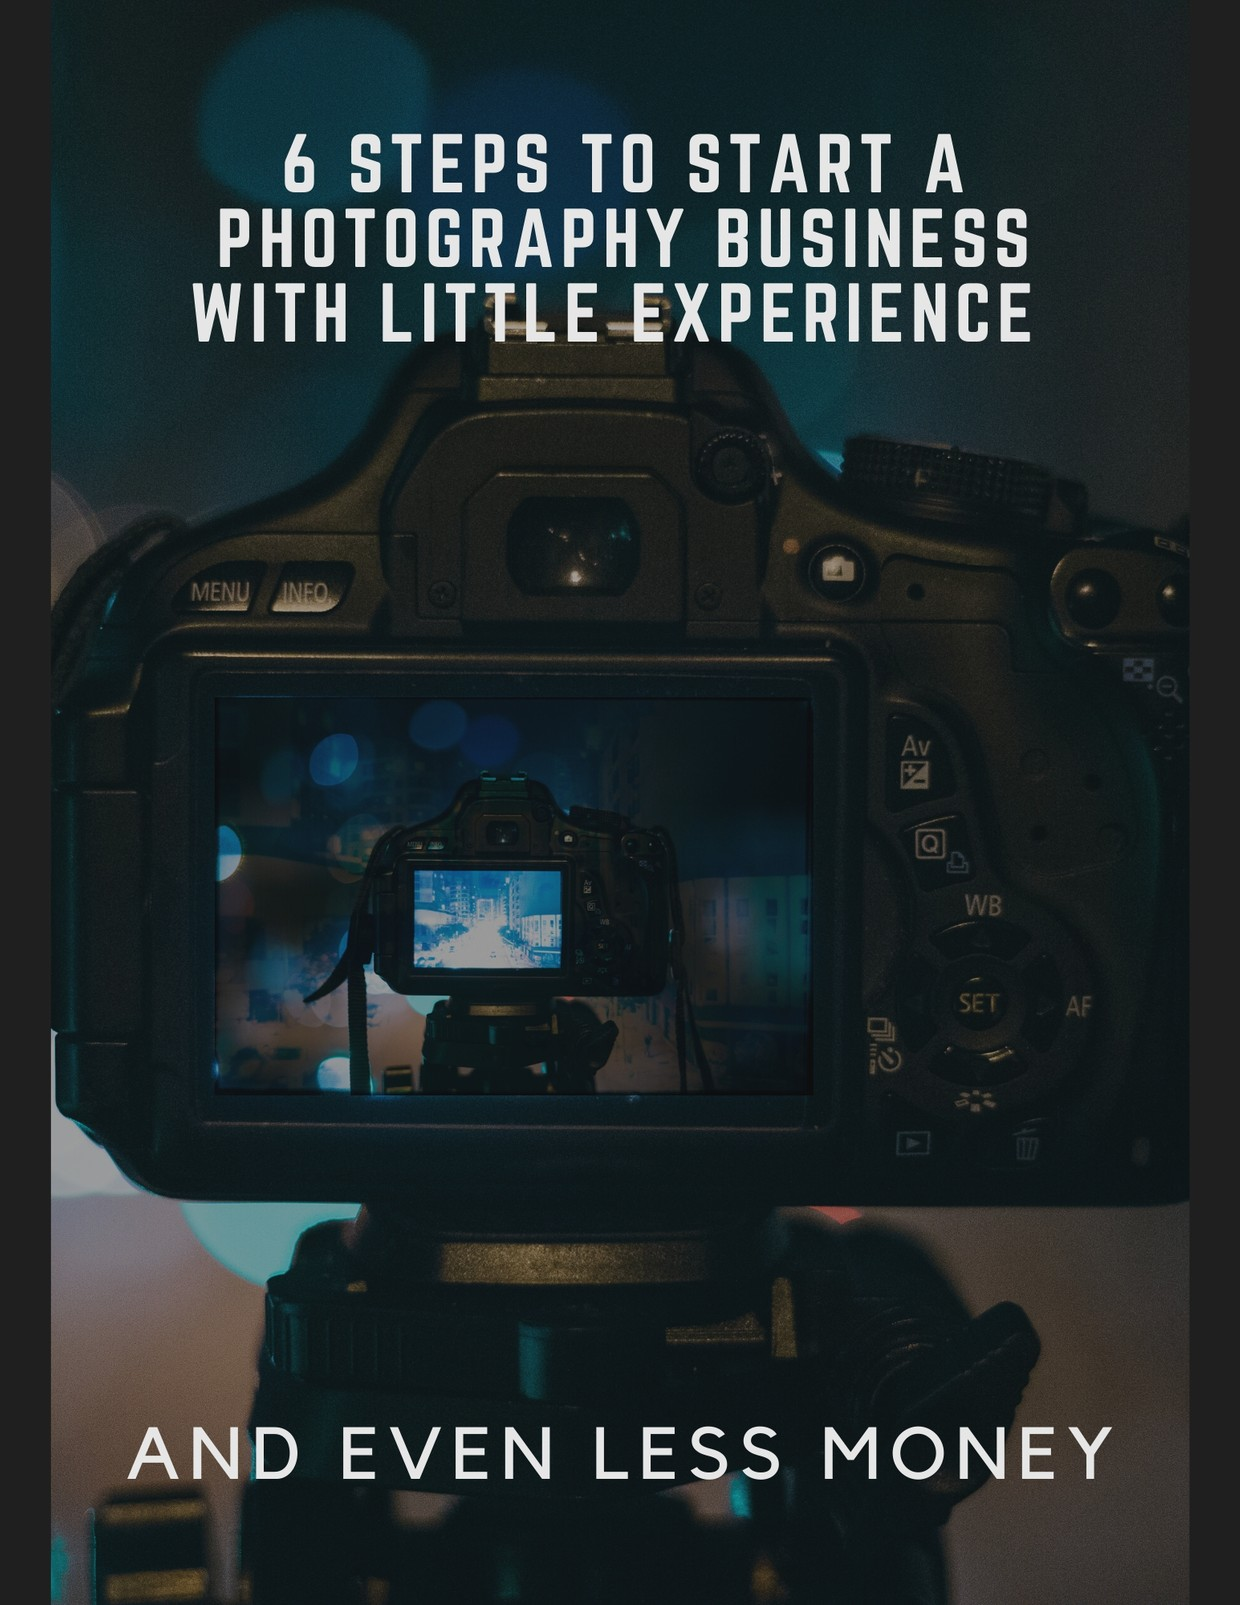 6 Steps To Starting A Photography Business With Little Experience and Even Less Money